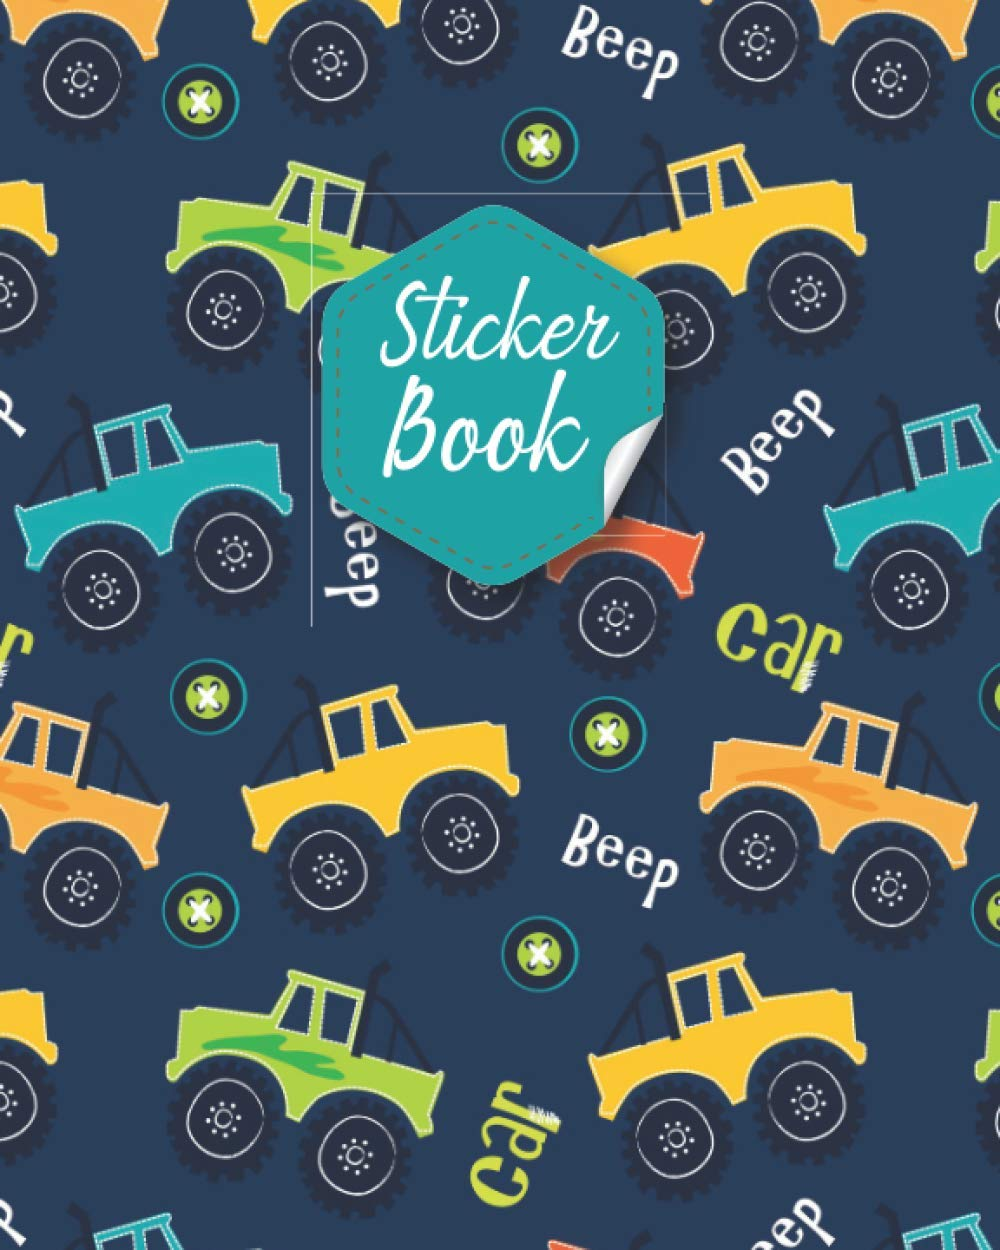 Sticker Book: Kids Sticker Collection Book & Blank Sticker Album also Blank Sticker Collecting Album for Kids, Children, Boys & Girls Sticker ... on their Own Sticker Books for Kids 100 pages